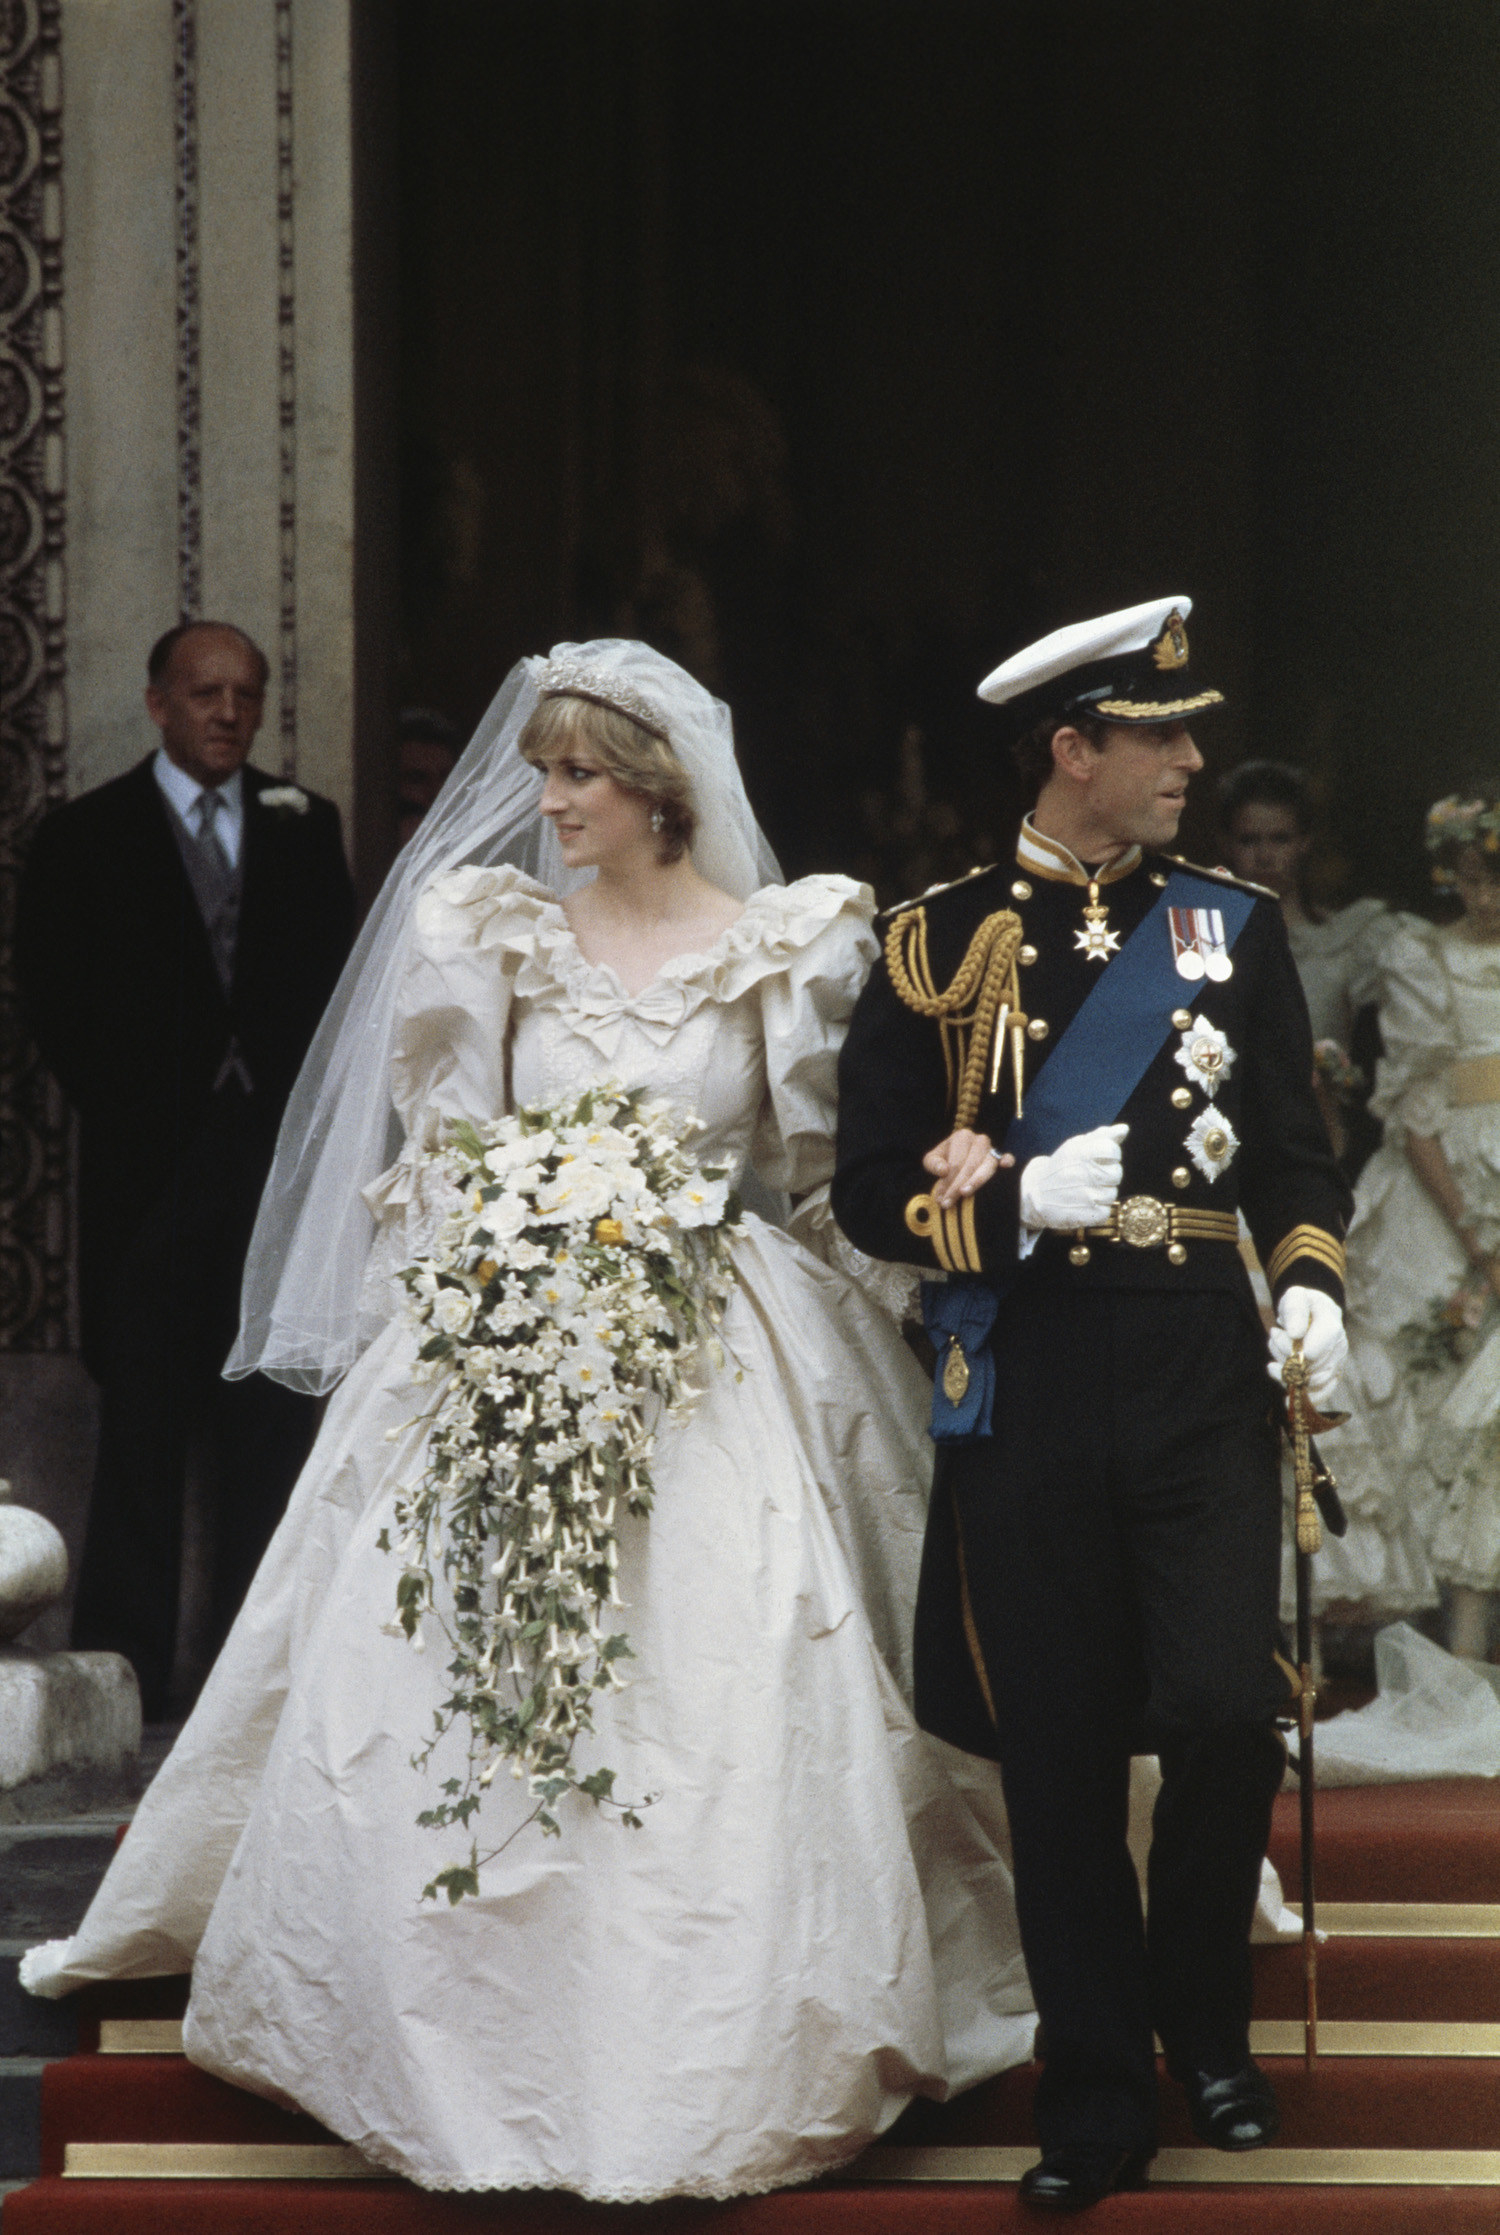 Lady Diana Spencer (1961 - 1997) in her wedding dress designed by David and Elizabeth Emanuel.